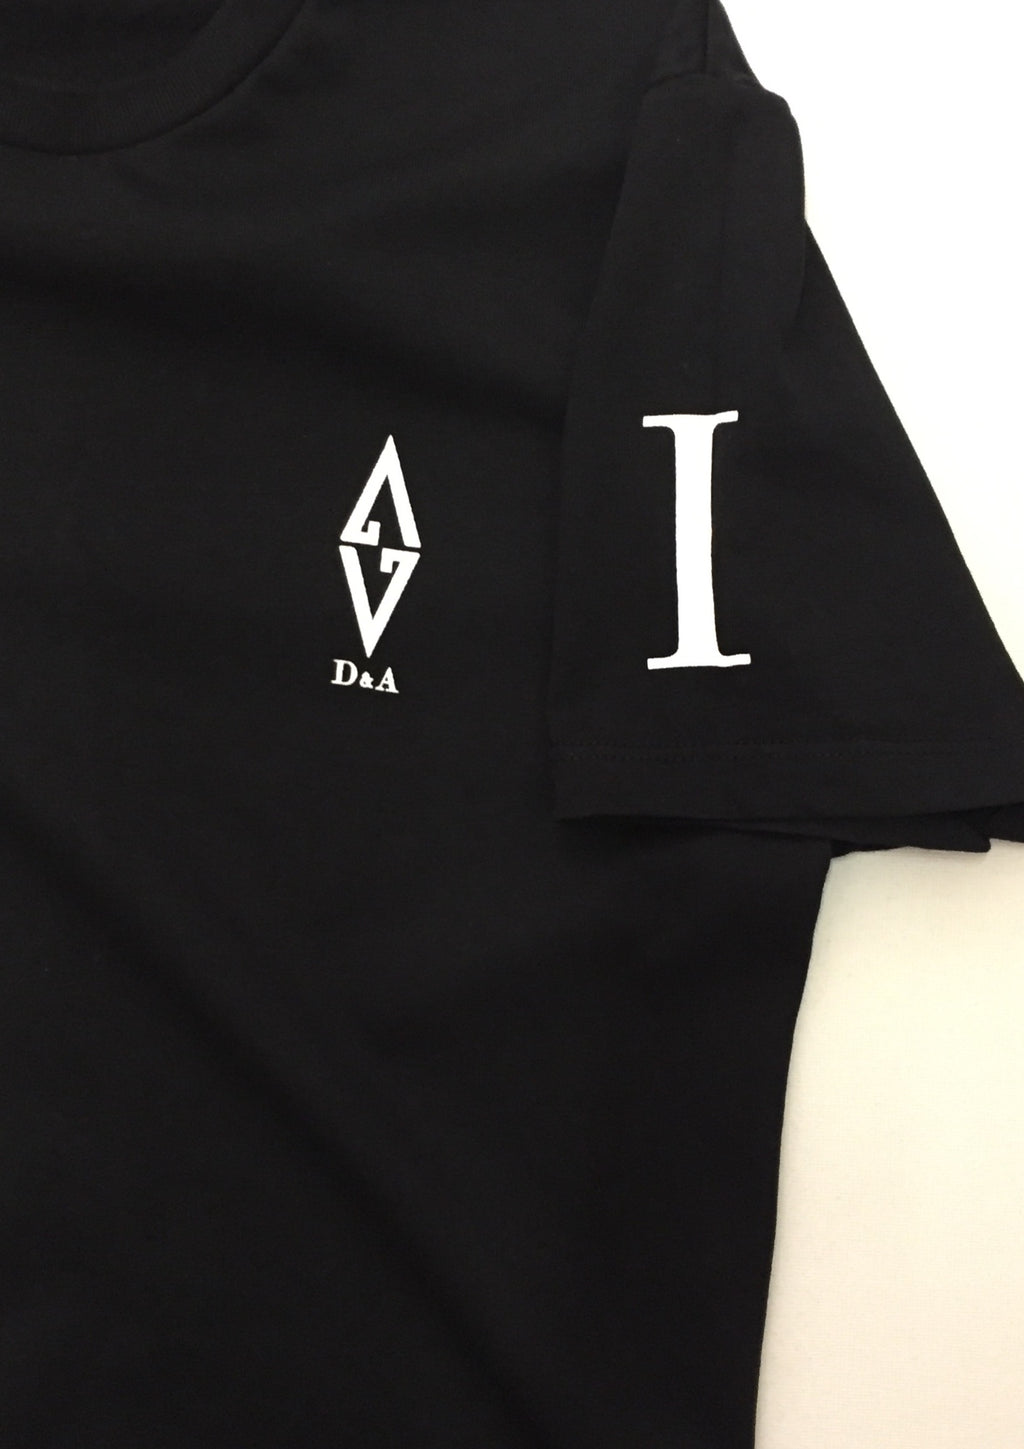 Diamonds & Aces | Signature T-Shirt | Roman Inspired Print | Luxury Tops